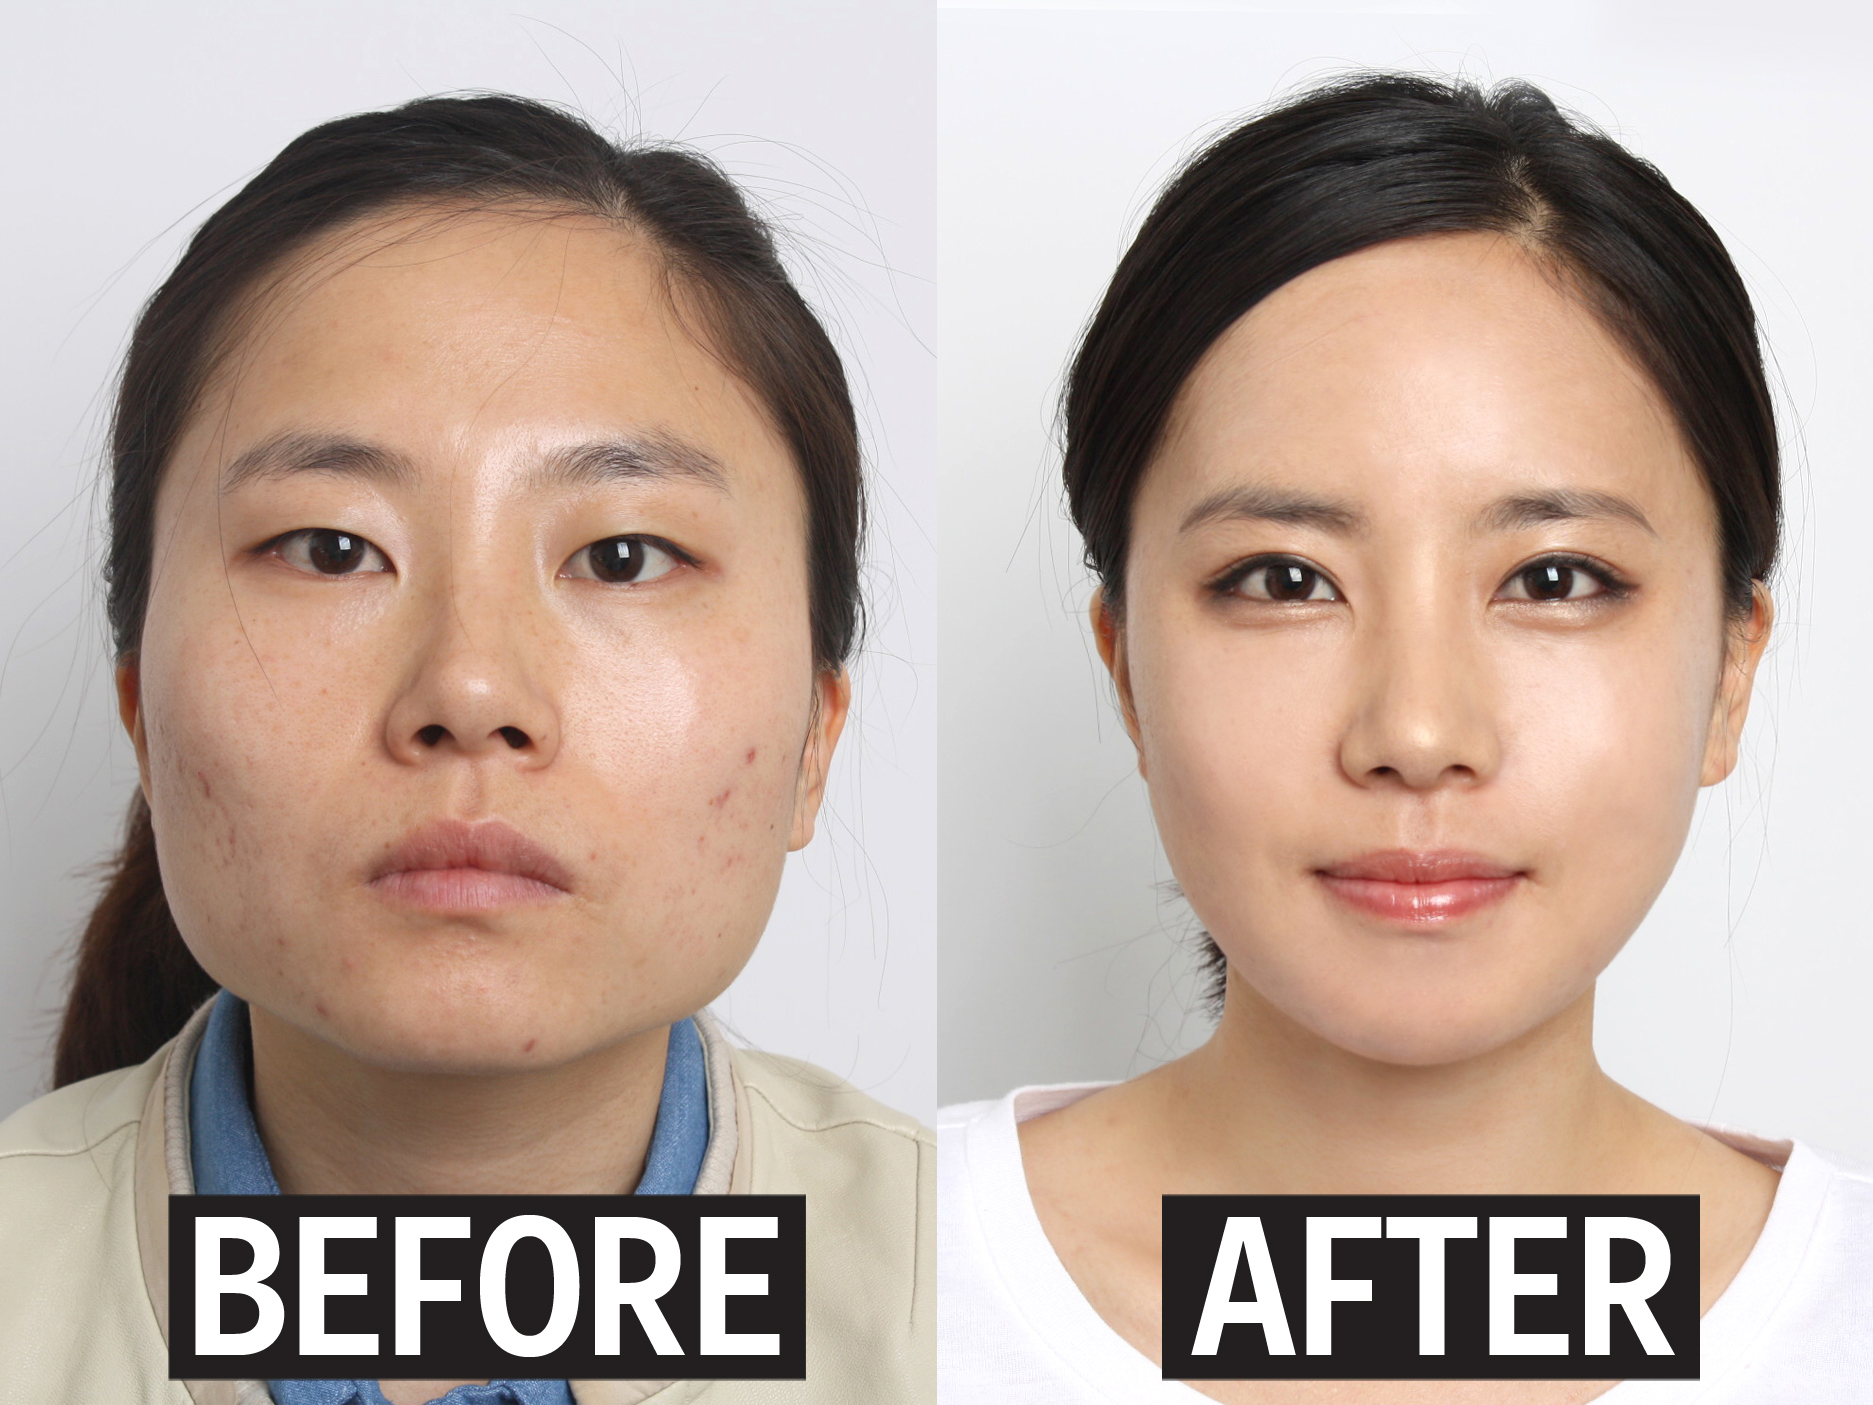 colleges for plastic surgery photo - 1